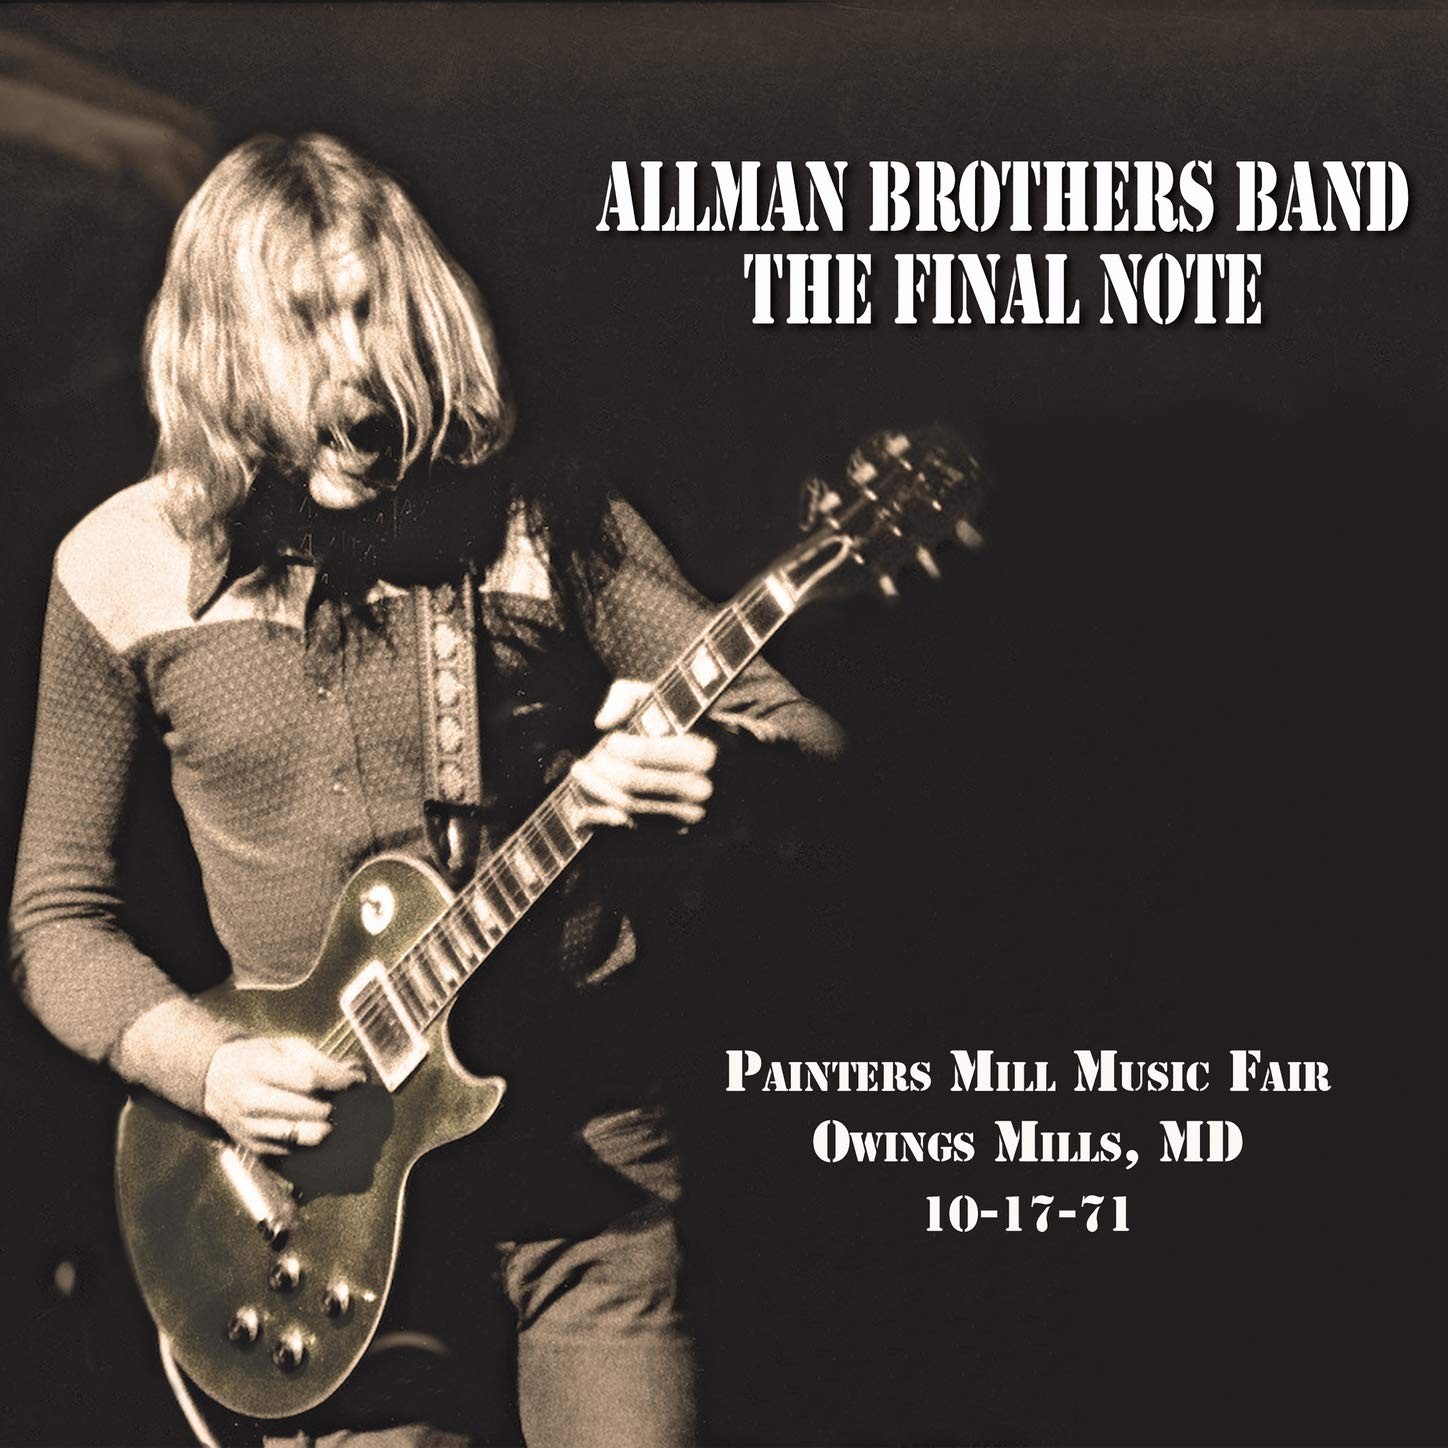 The Allman Brothers Band - The Final Note (2020) [FLAC] Download